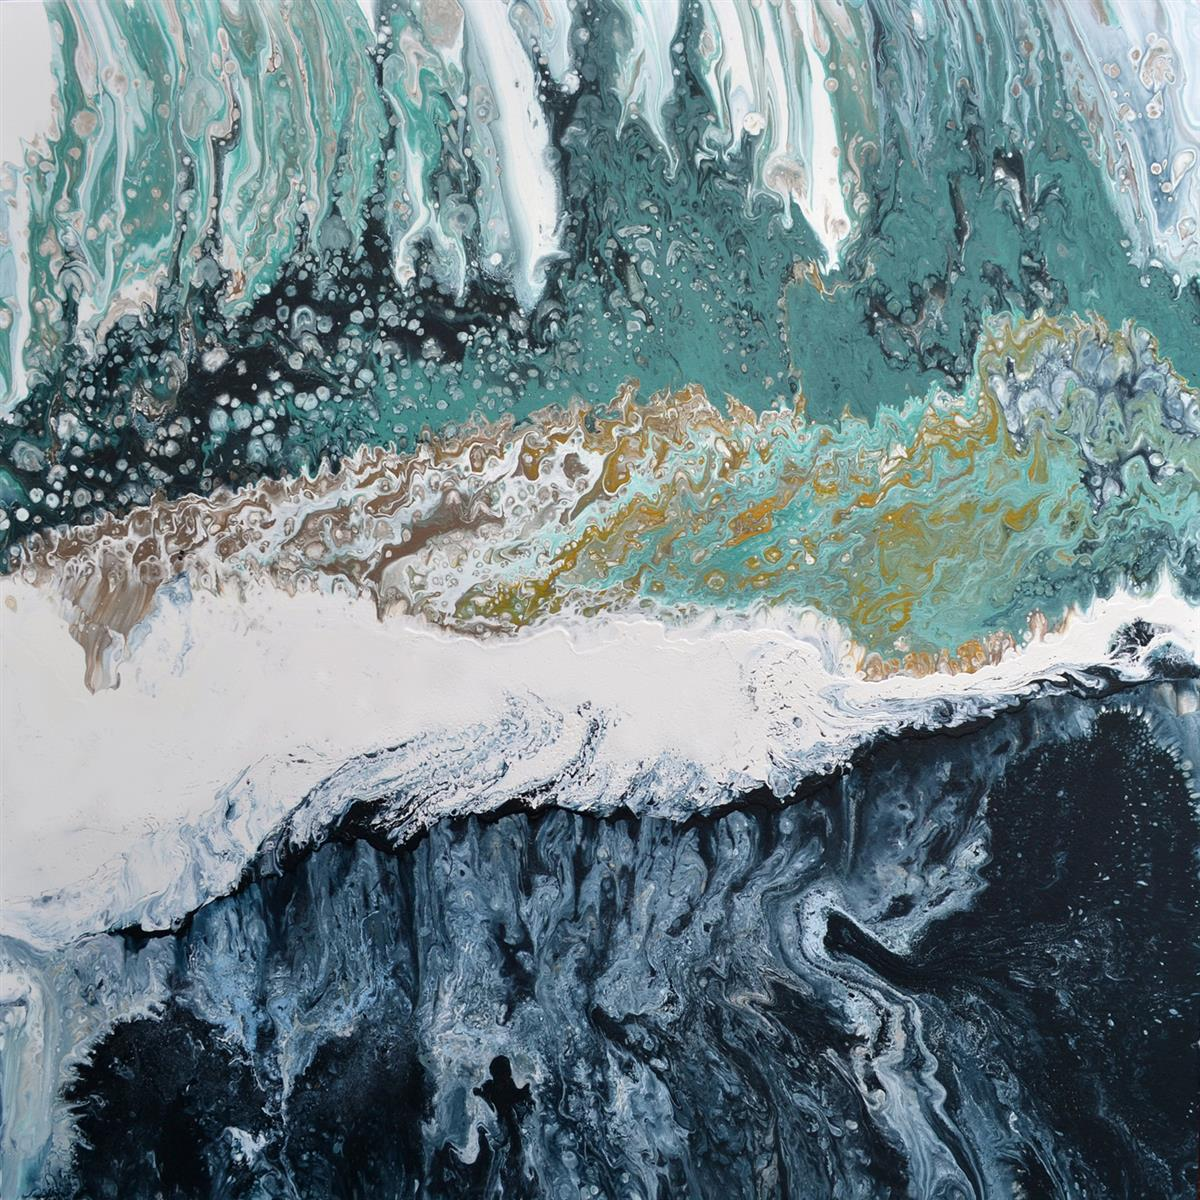 abstract waterfall painting brigitte ackland